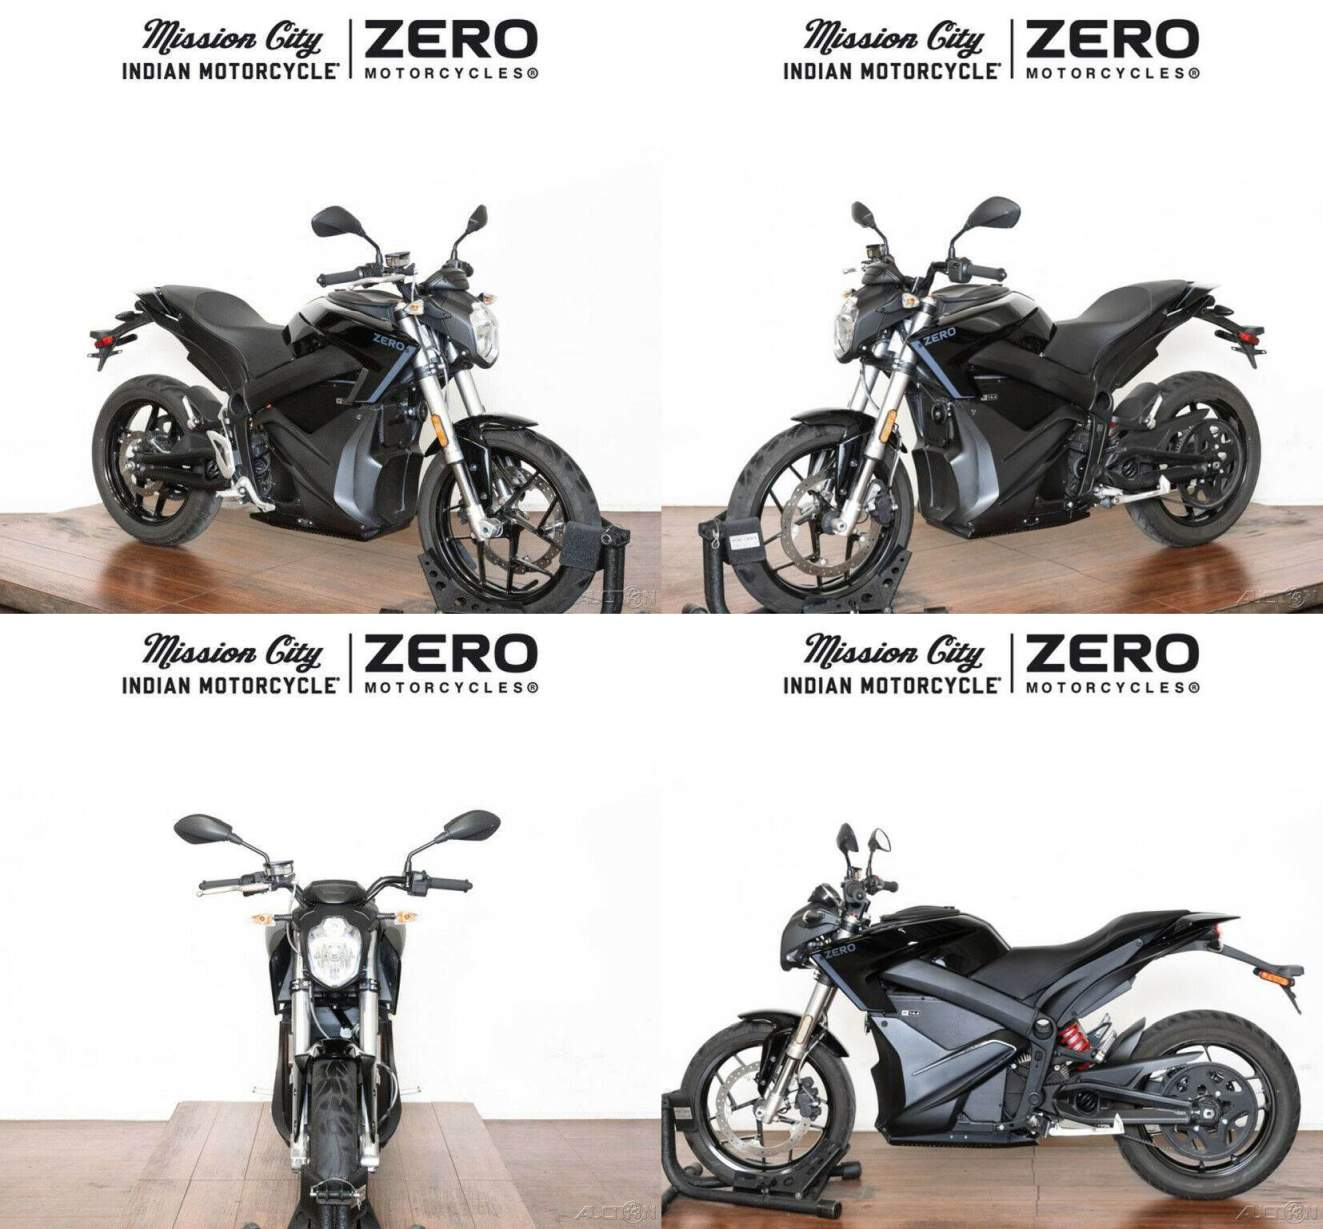 2019 Other Makes S ZF14.4 Jet Black used for sale